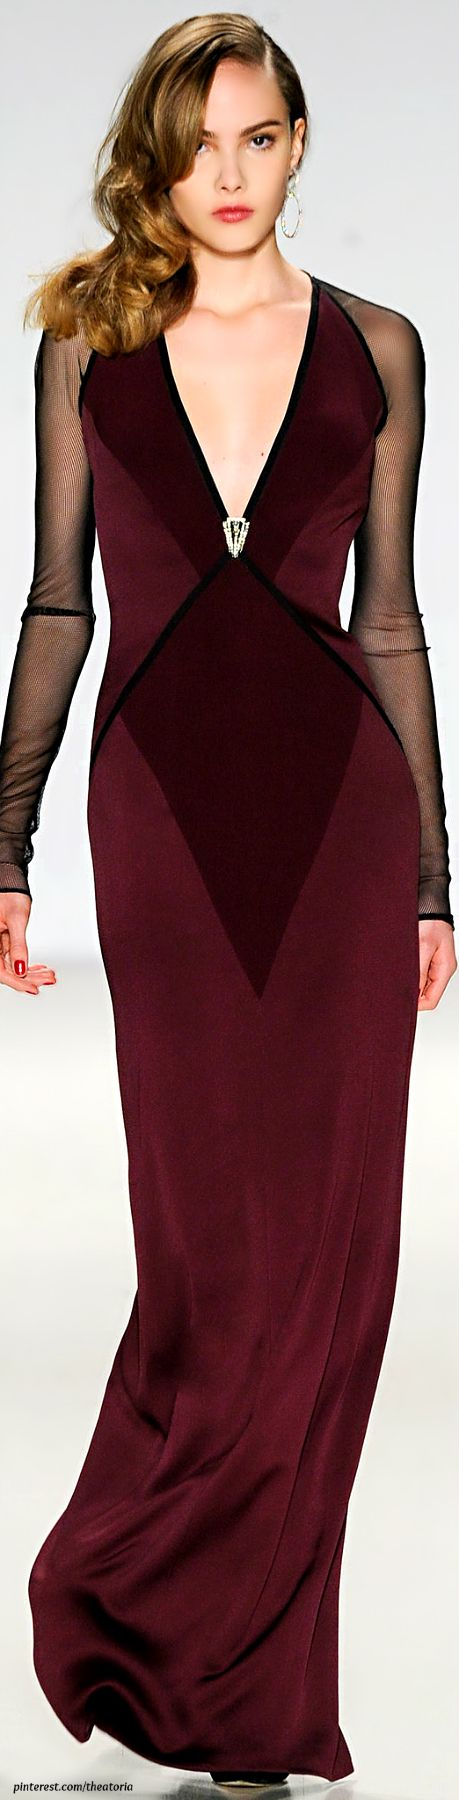 The rich burgundy hue will be very prevalent this season. Pamella Roland Fall 2014 - burgundy gown